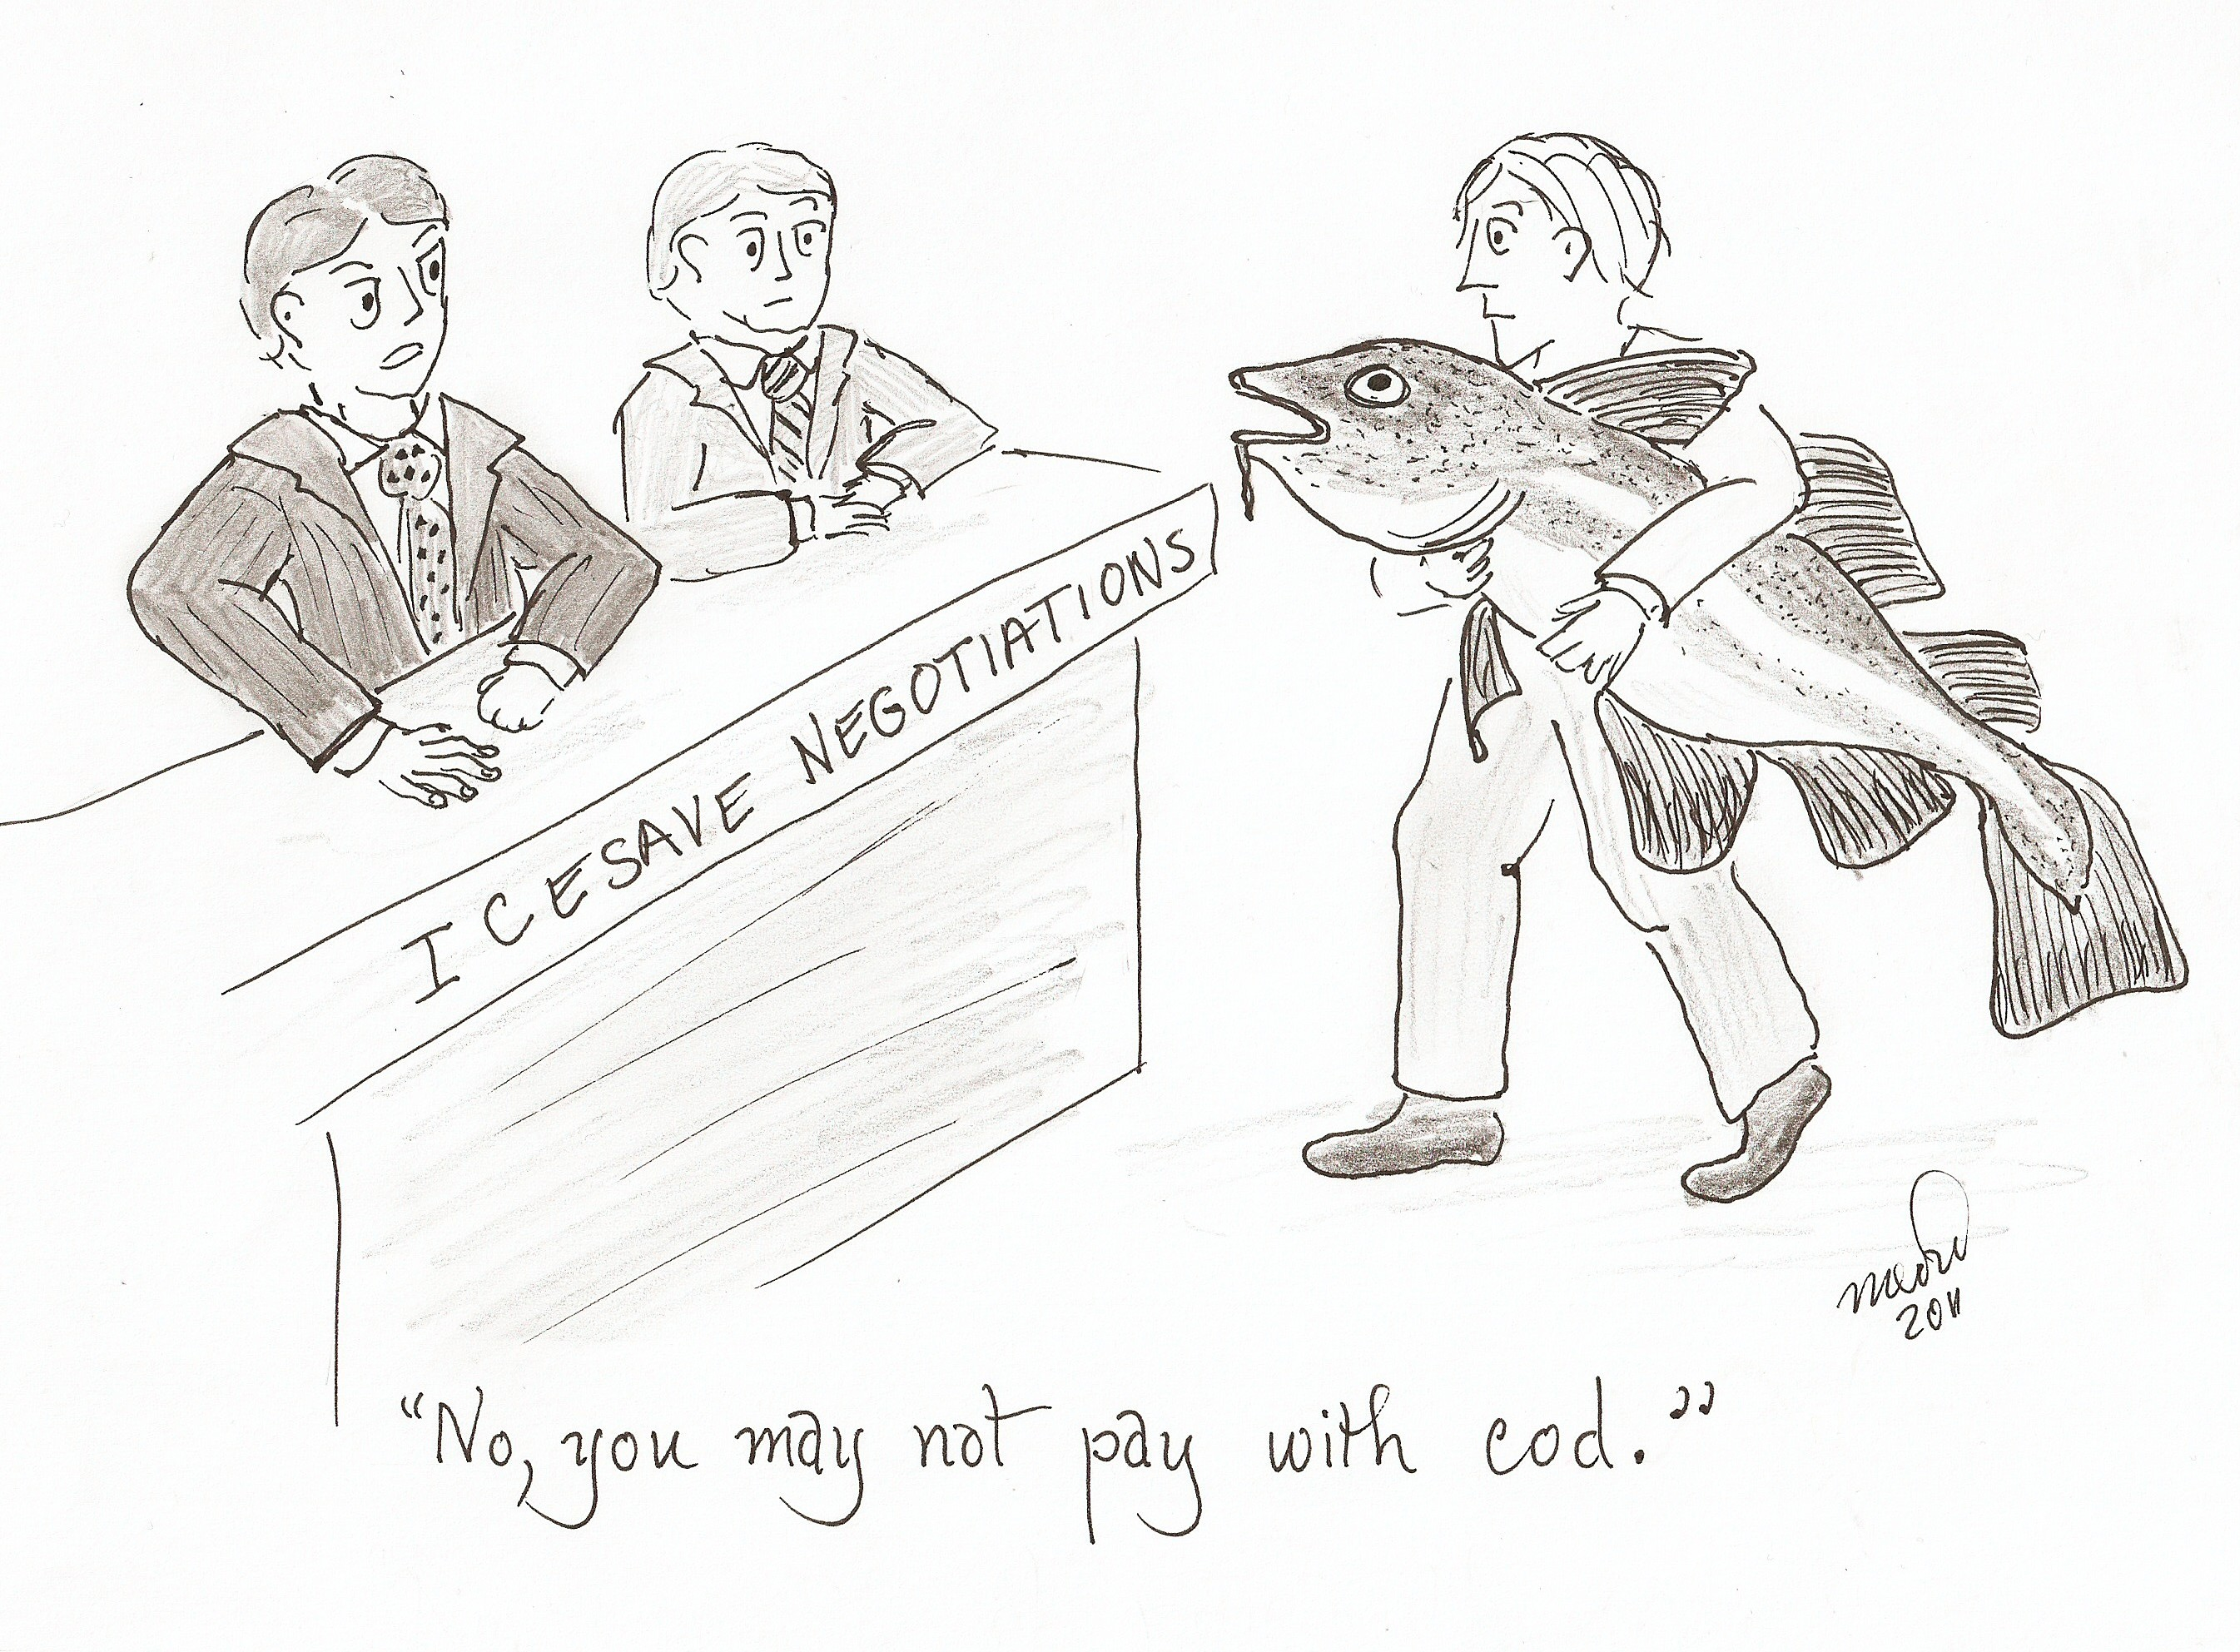 you cannot pay with cod cartoon